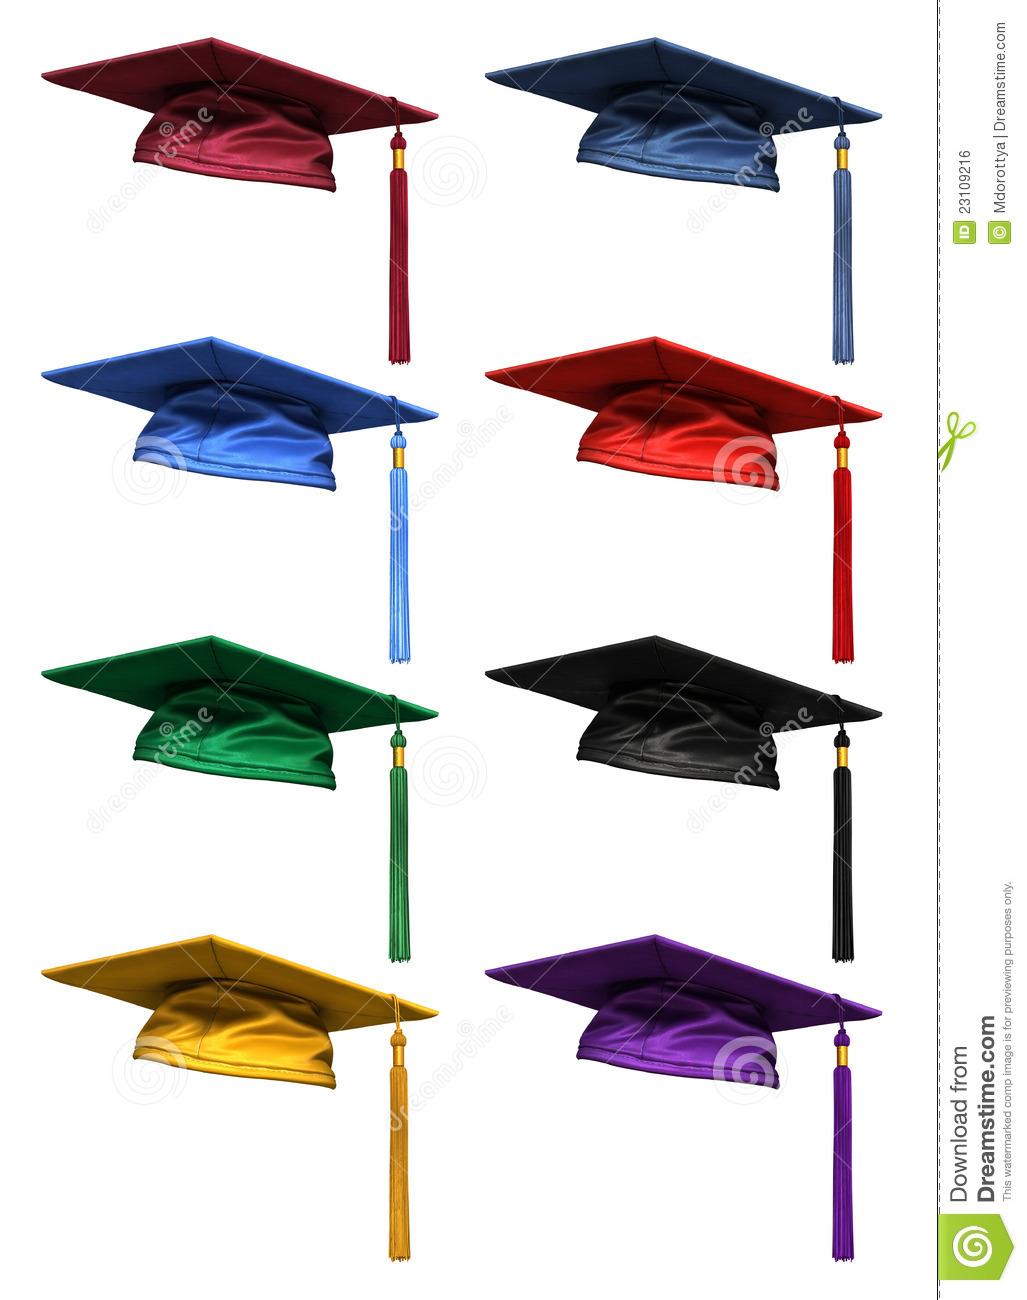 3D Collection Of Graduation Caps Royalty Free Stock Image - Image ...